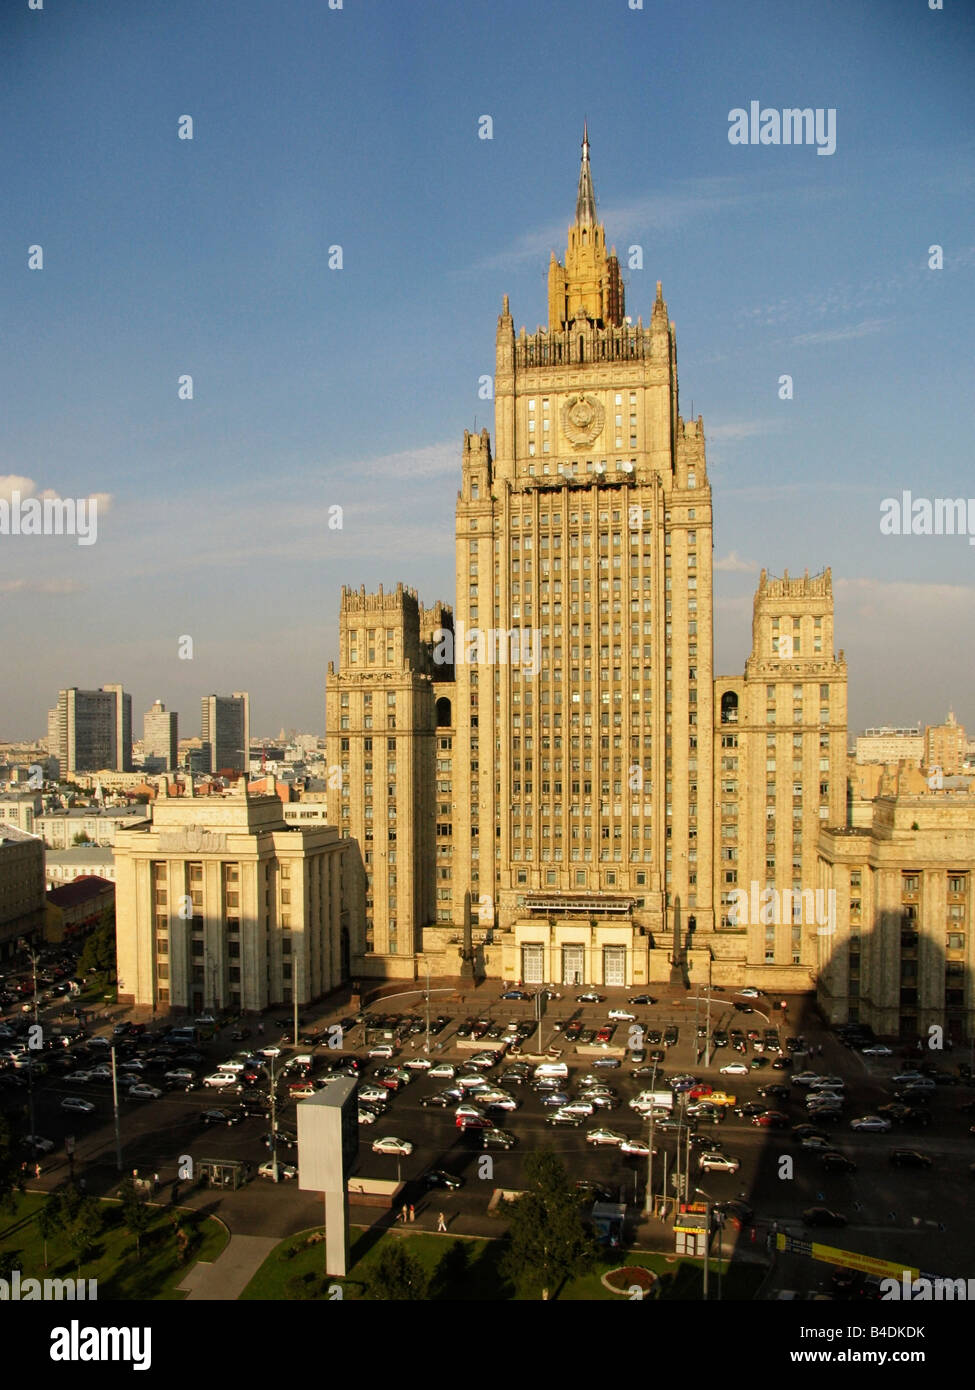 The Ministry of Foreign Affairs, Moscow - Stock Image